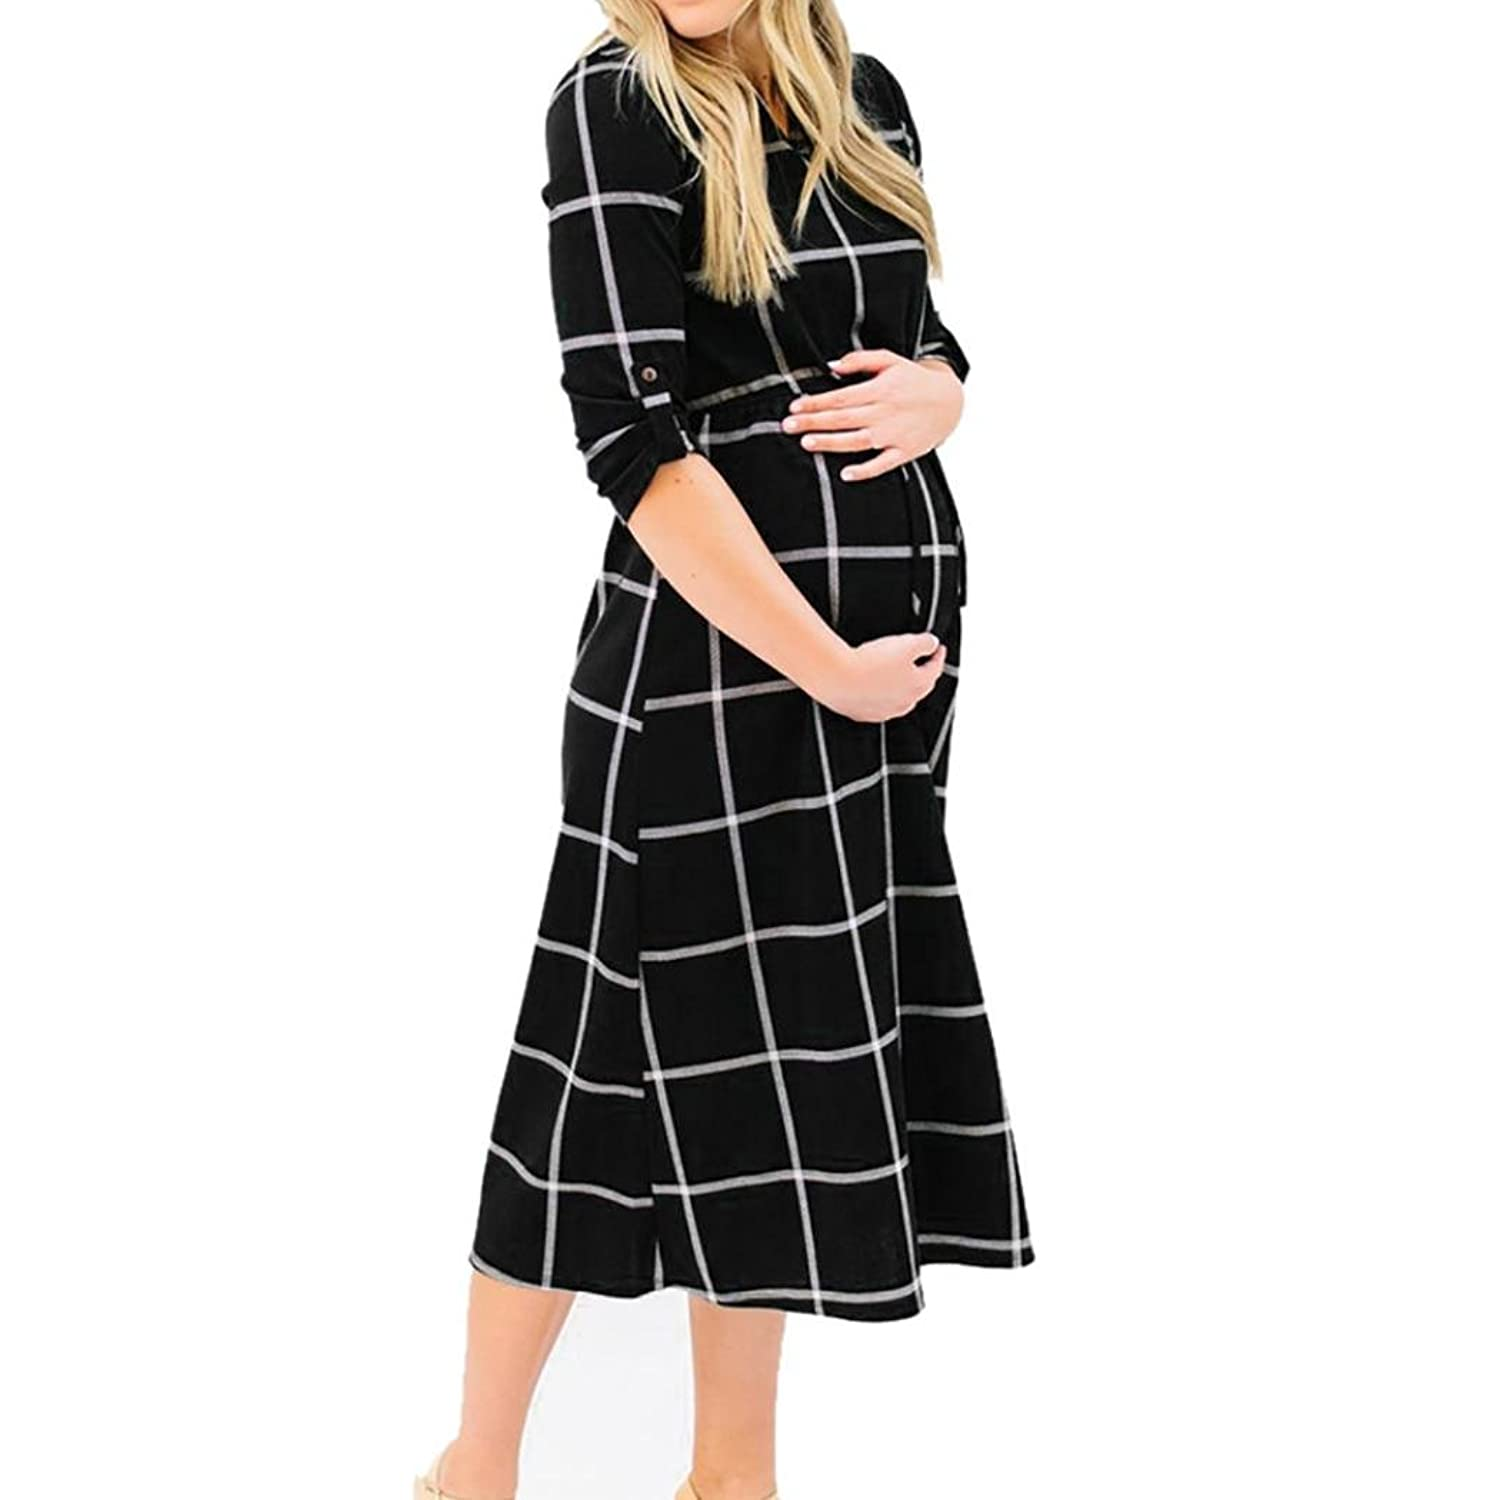 3a2fda17acd36 Women\'s Ruched Floral Lace Maternity Nursing Party Maxi Tank Dress Baby  Shower Pregnancy Photography Long Gown Dresses Women\'s ...